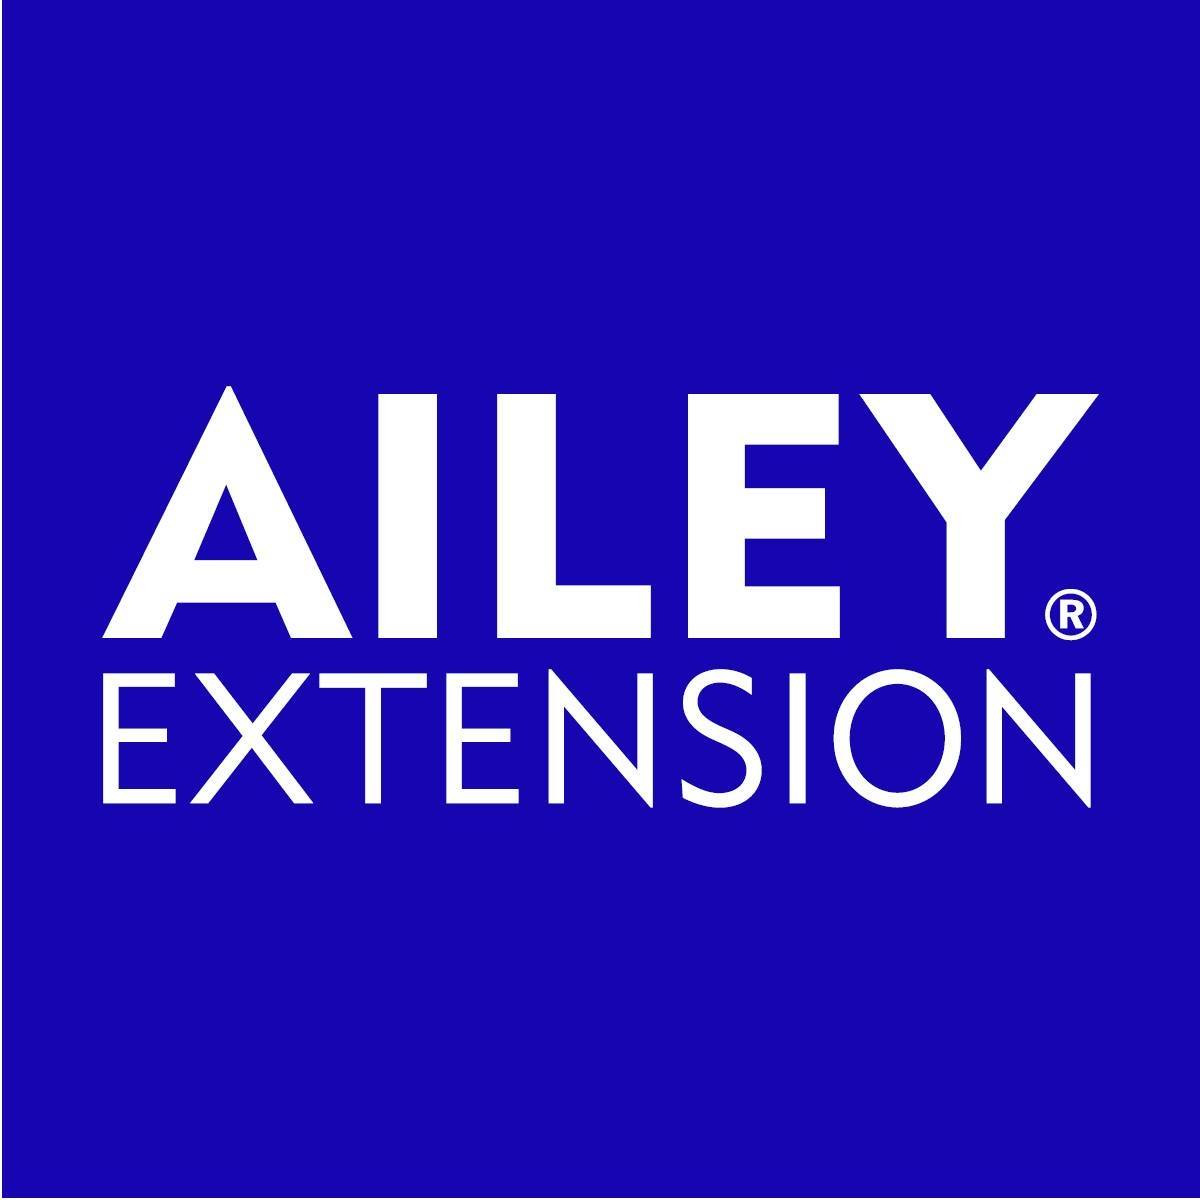 Ailey Extension